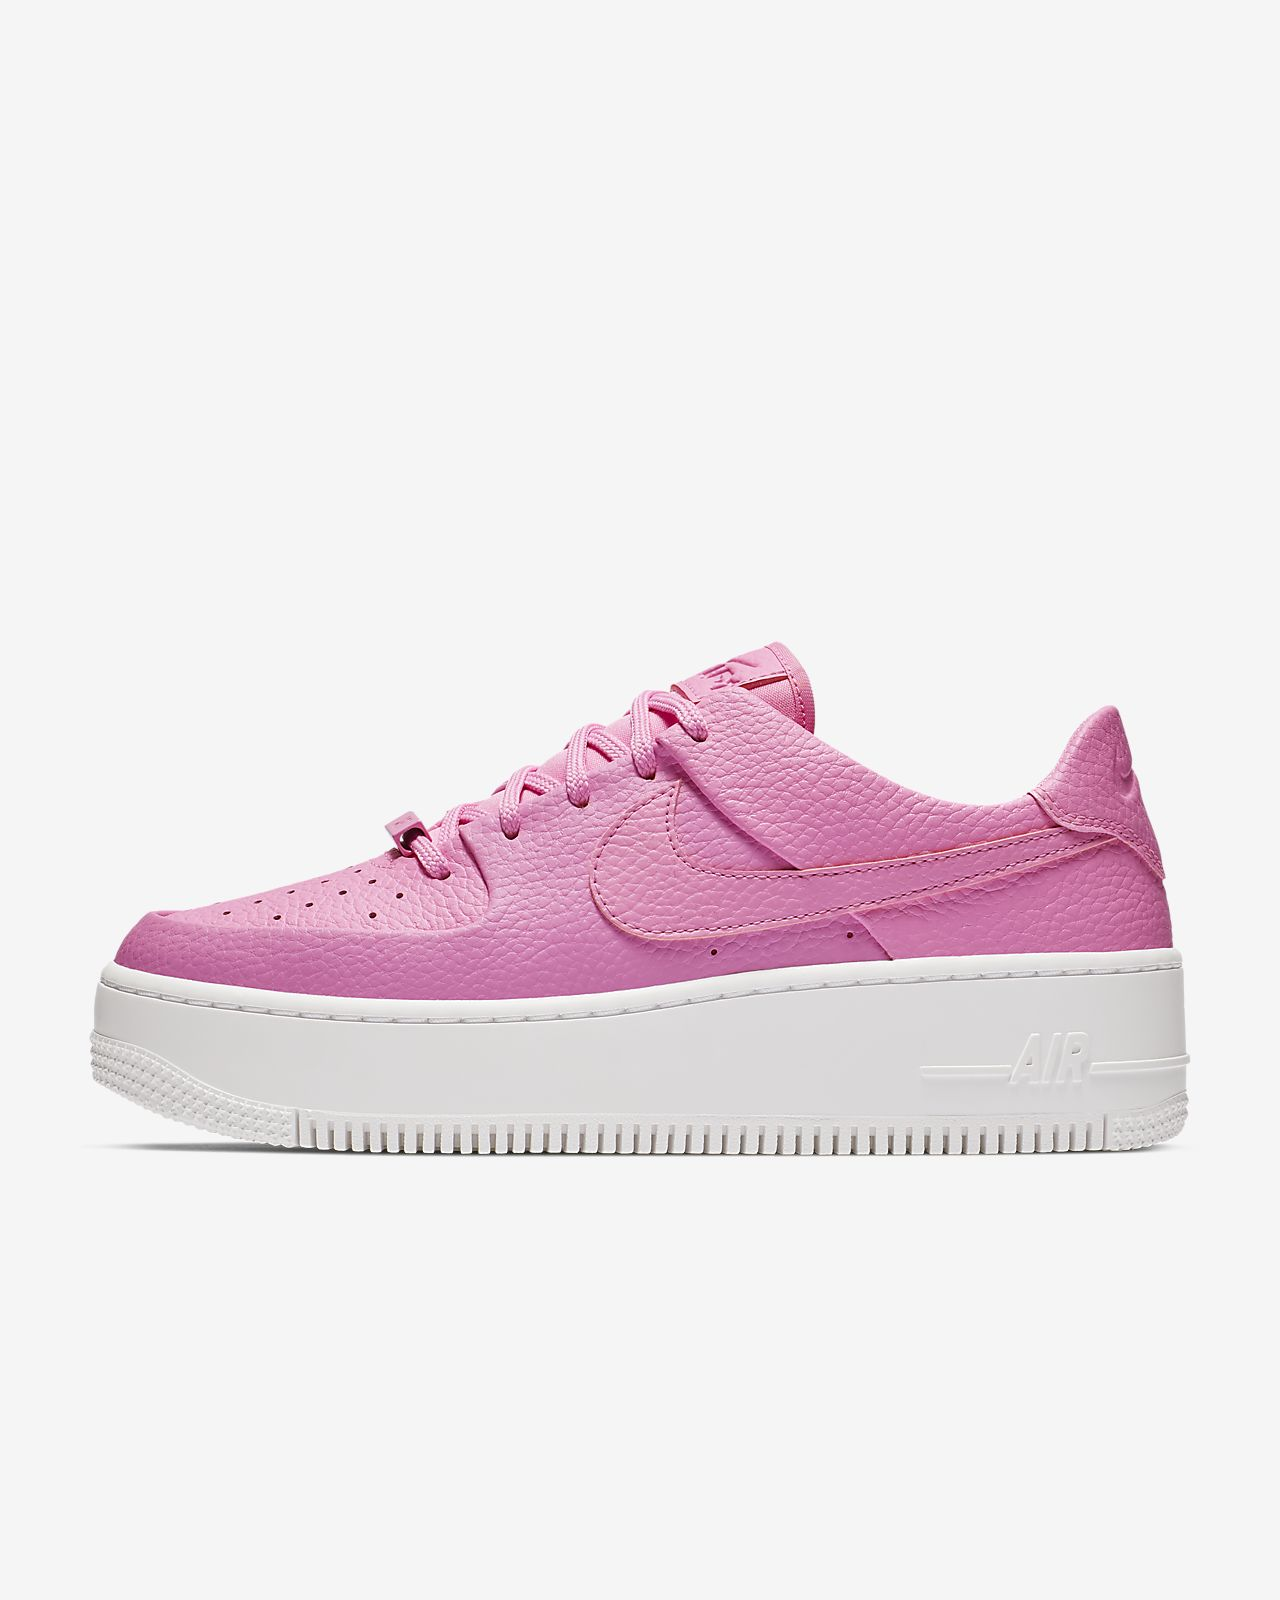 competitive price 3d8f0 d6386 ... Nike Air Force 1 Sage Low Women s Shoe